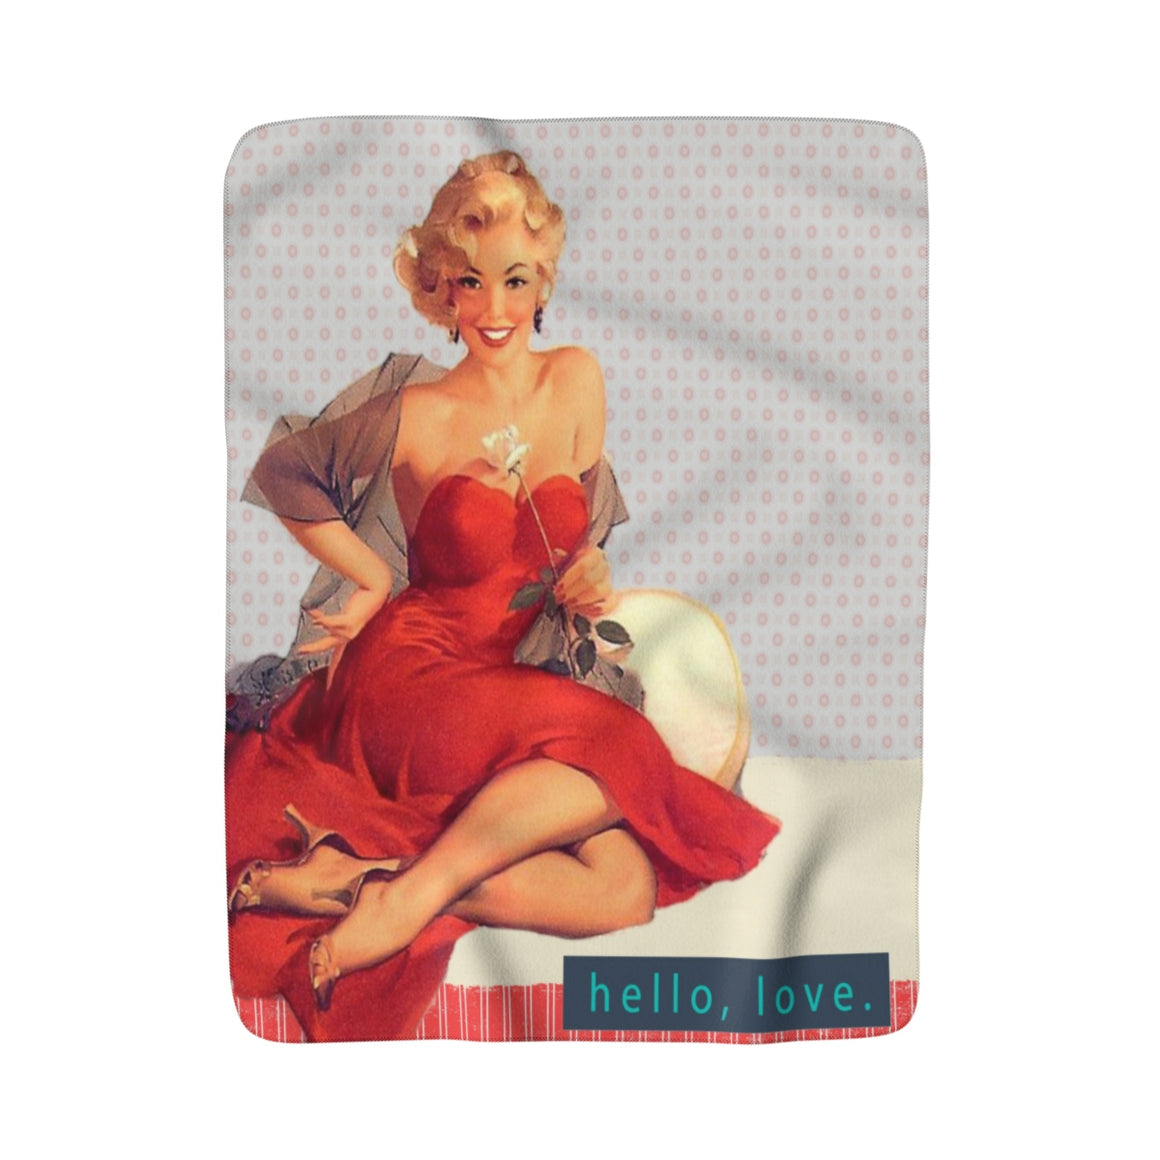 My Fabulous Style Made to Order Lady in a Red Dress  Sherpa Fleece Blanket-Luxurious Fleece Blanket